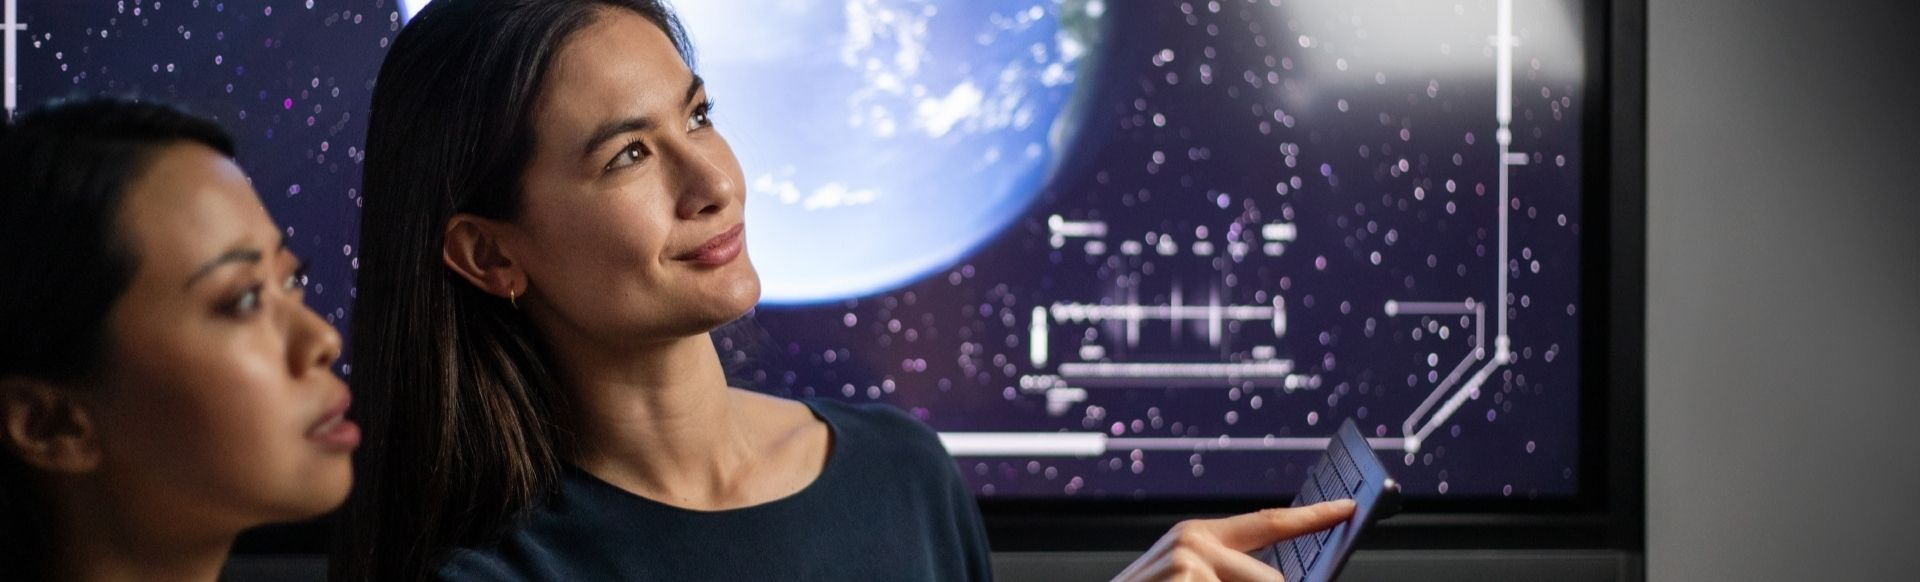 A woman showing another young woman edtech technology with a space background.